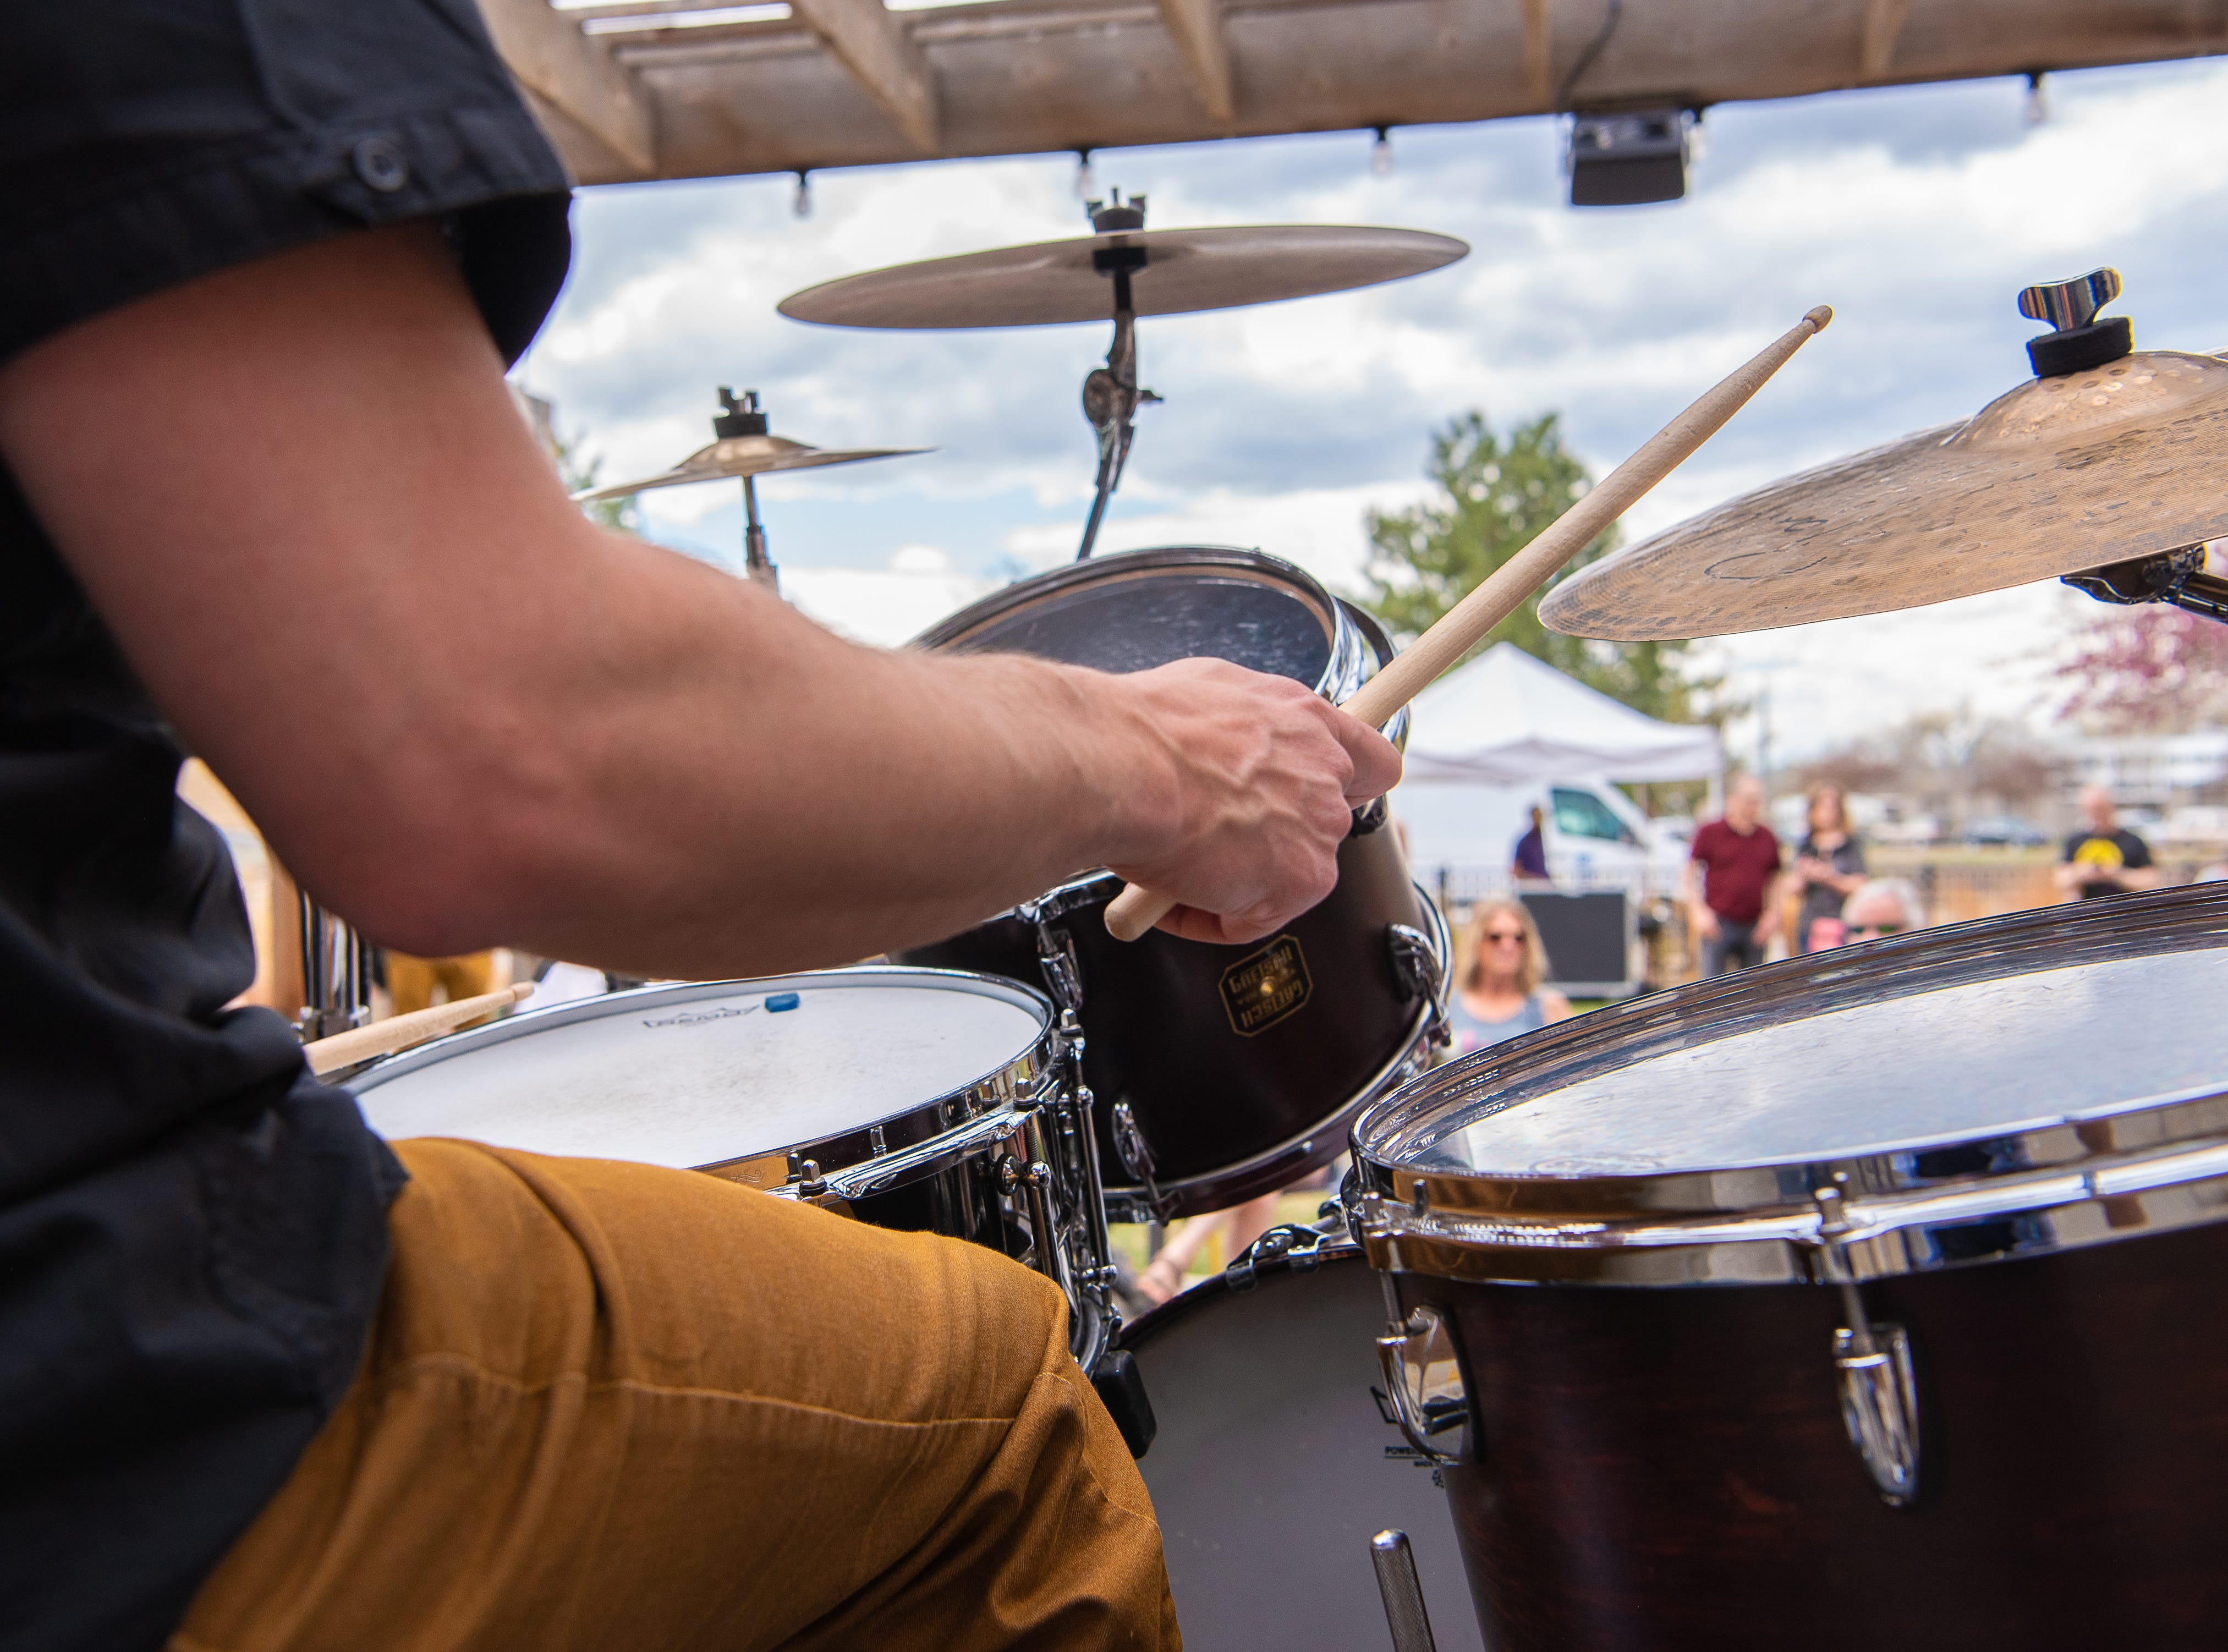 Steelin' The Spaceways performs at New Belgium Brewing Co. during the FoCoMX XI music festival on Friday, April 26, 2019, in Fort Collins, Colo.